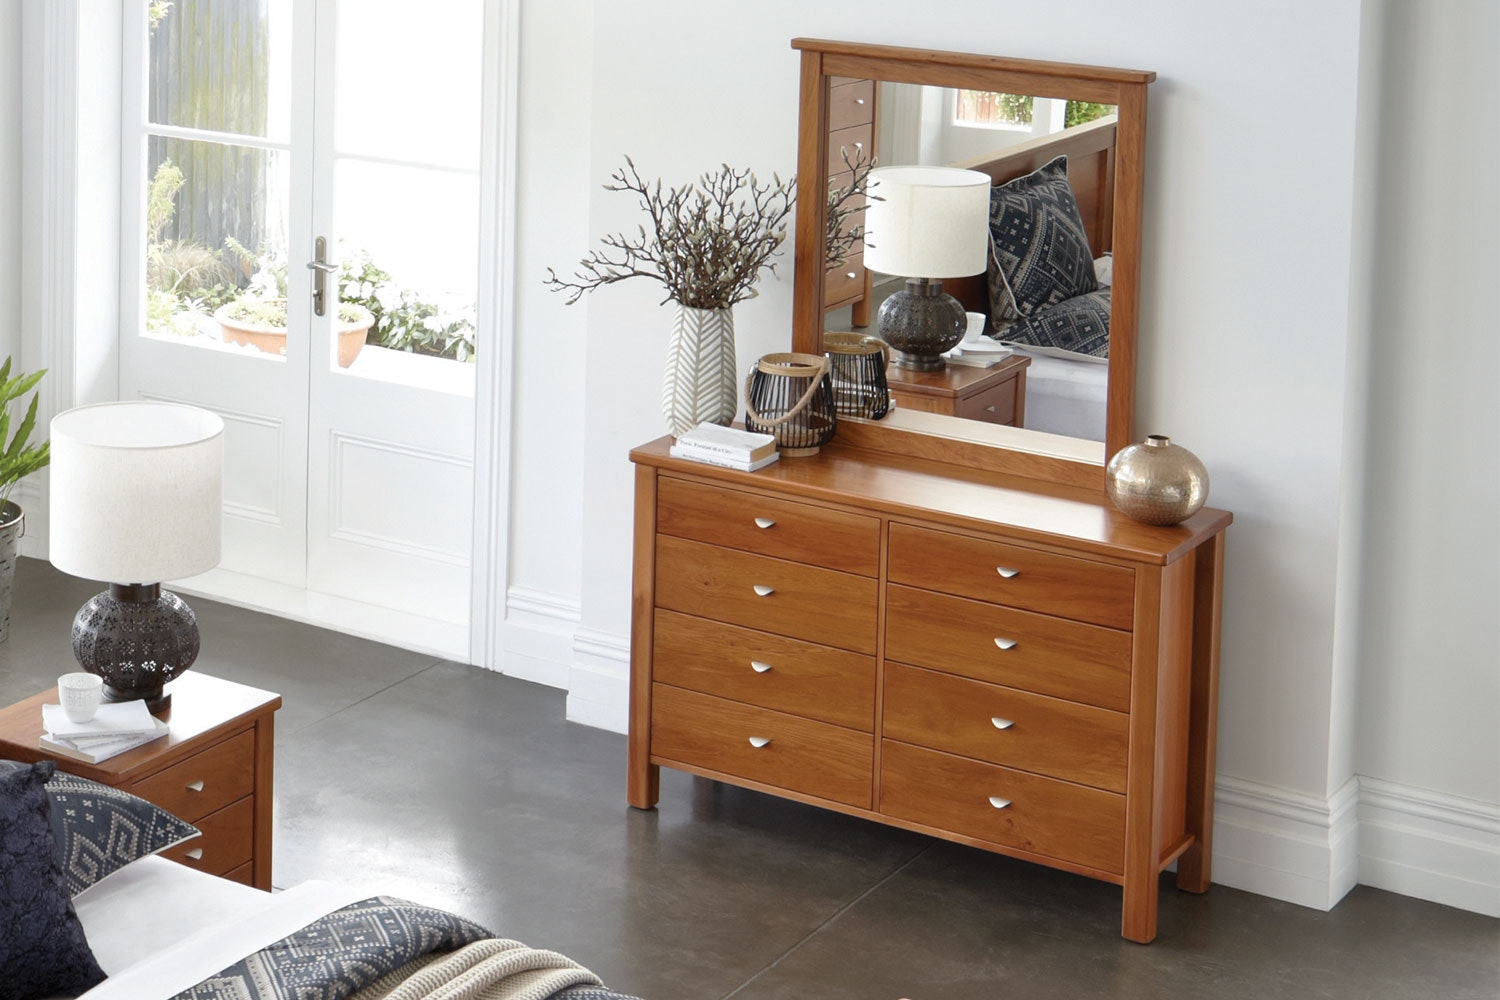 Riversdale Dresser and Mirror by Marlex Furniture